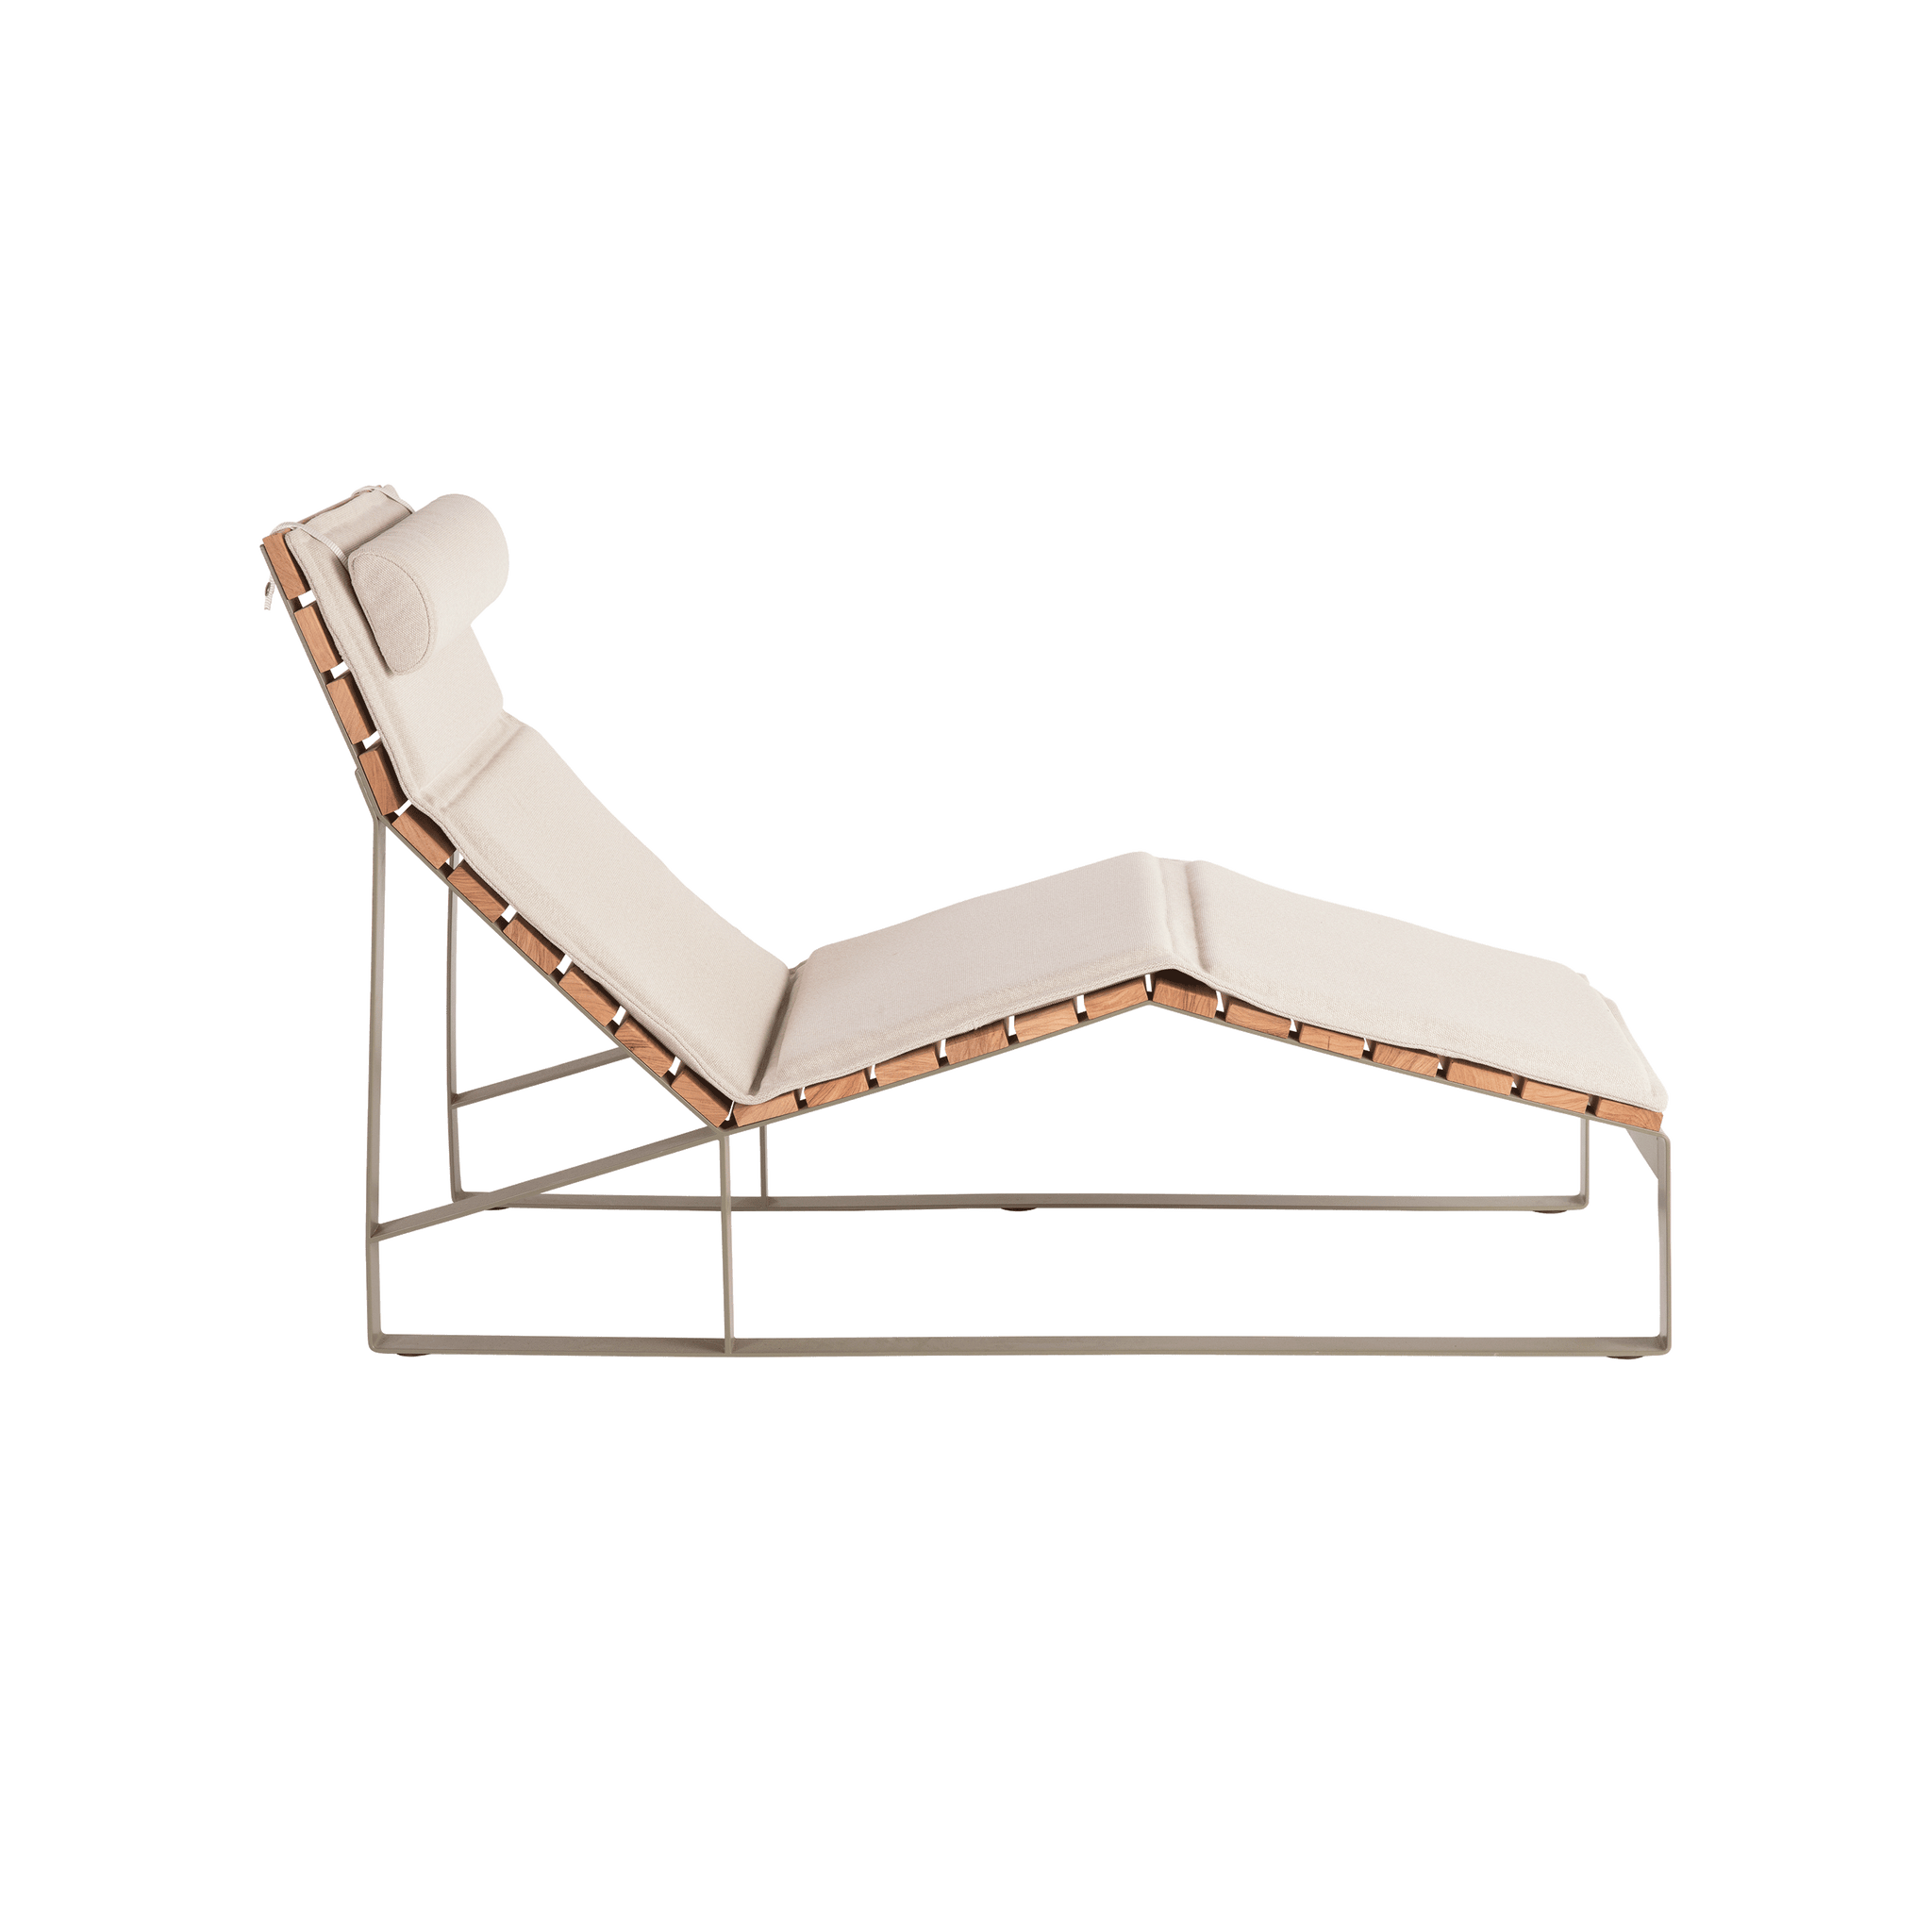 Upholstery Only for Ribbon Chaise (No Frame)